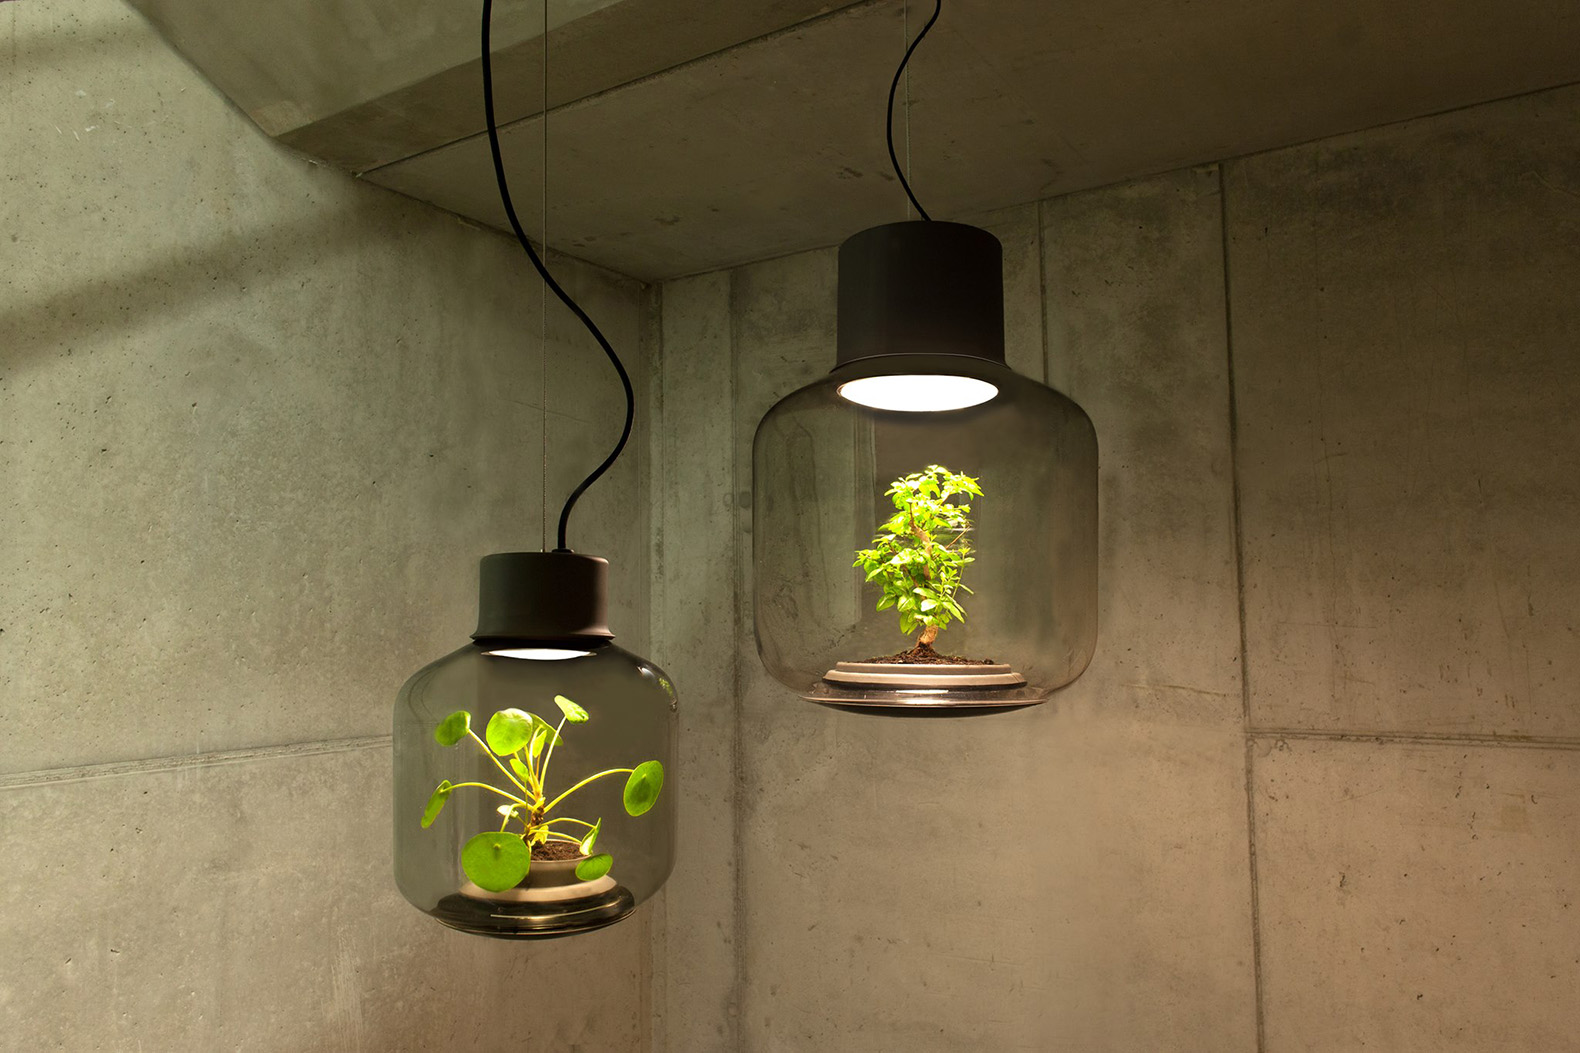 Lamp Plant These Lamps Let You Grow Plants Anywhere Even In Windowless Rooms